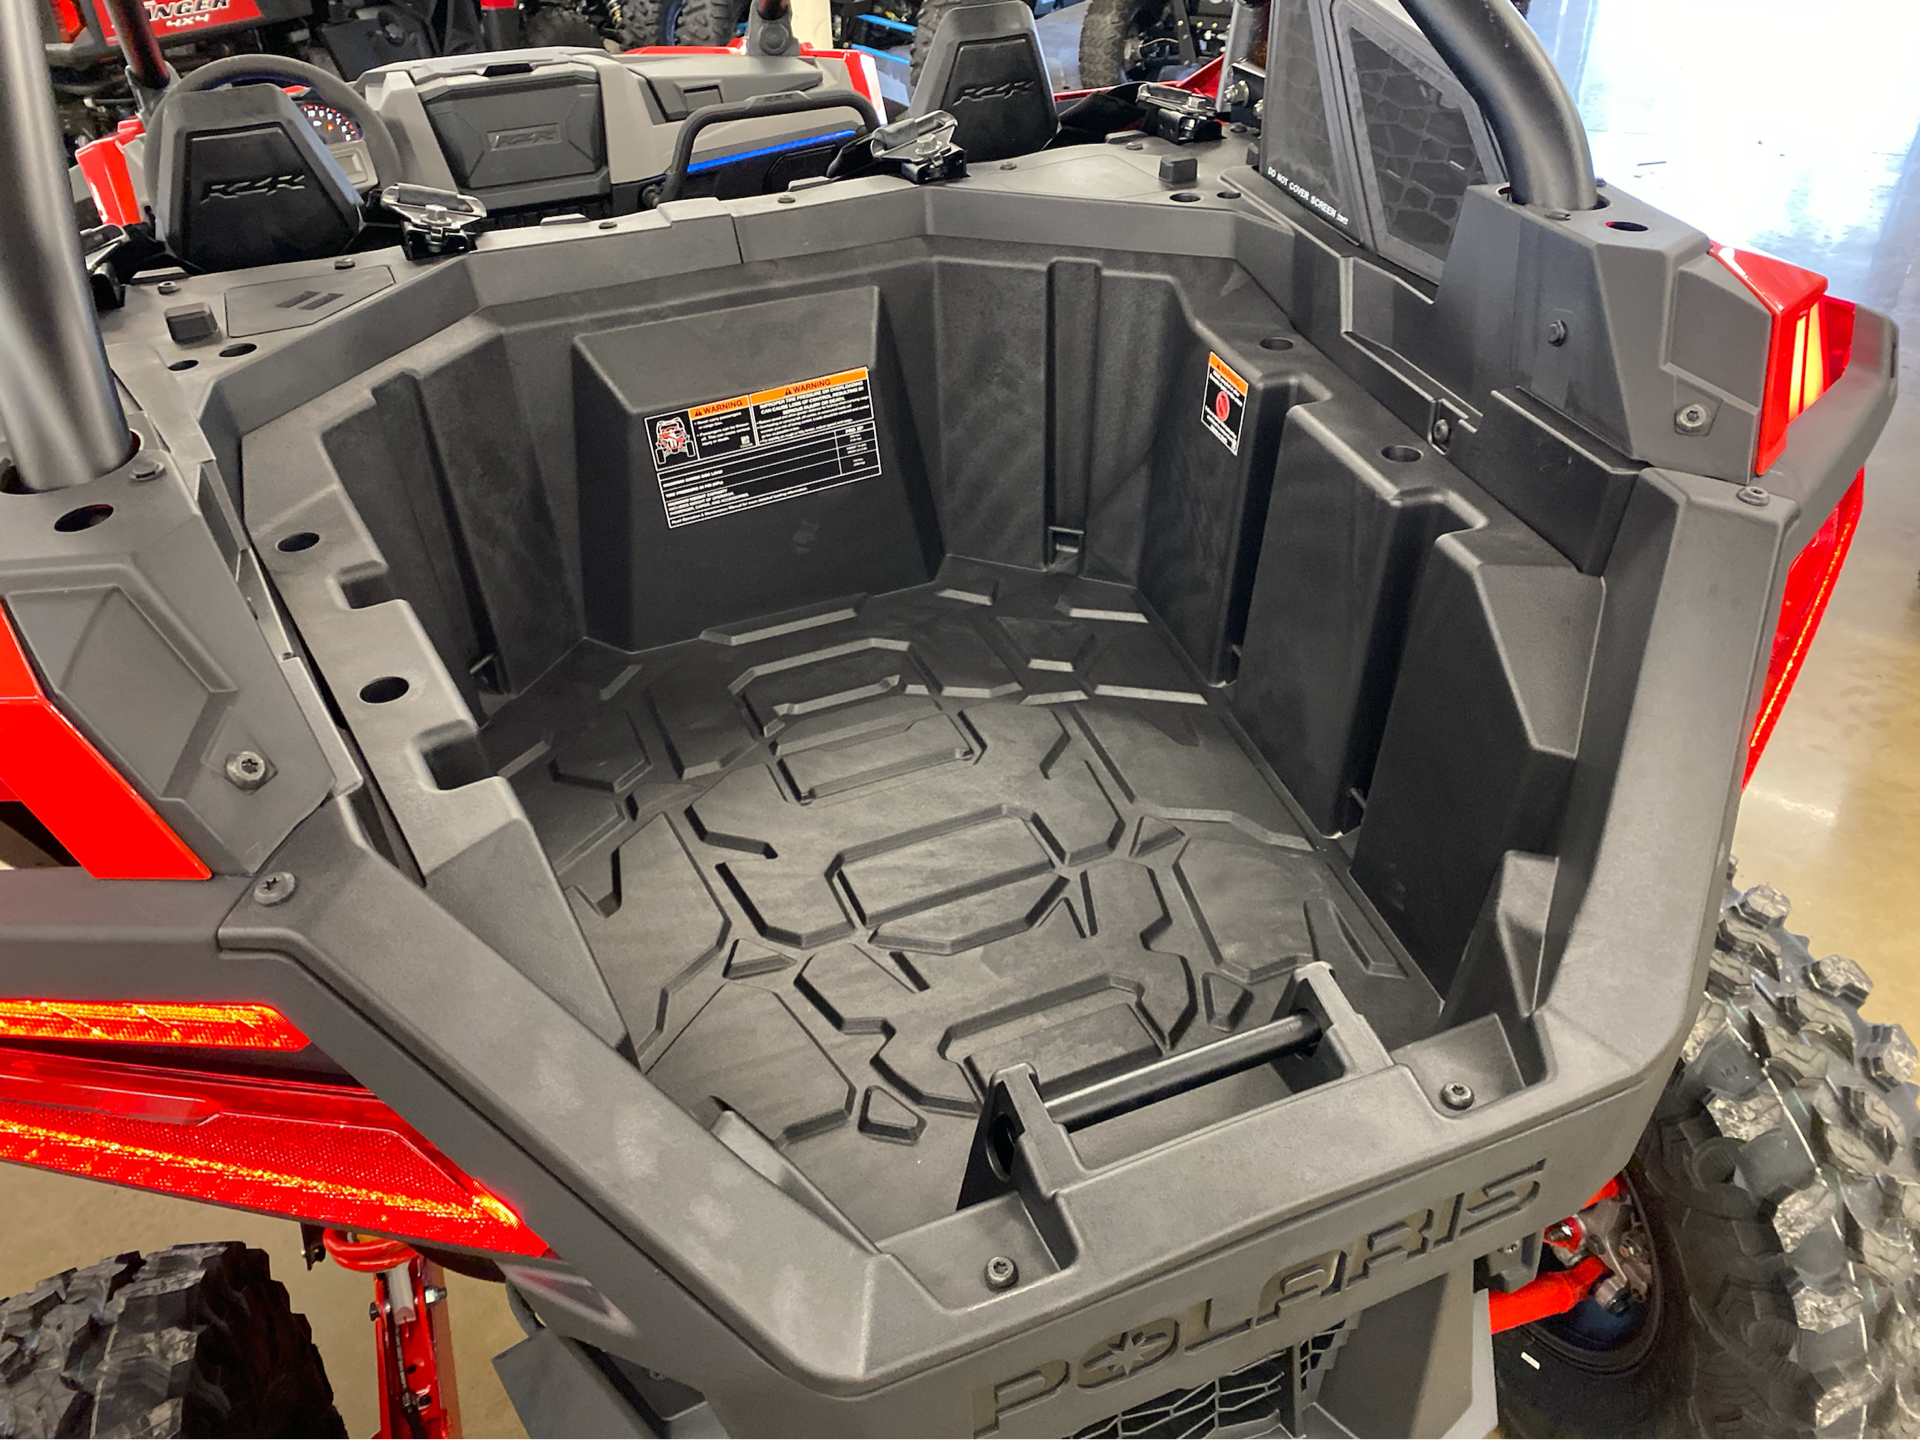 2020 Polaris RZR Pro XP Premium in Chicora, Pennsylvania - Photo 13